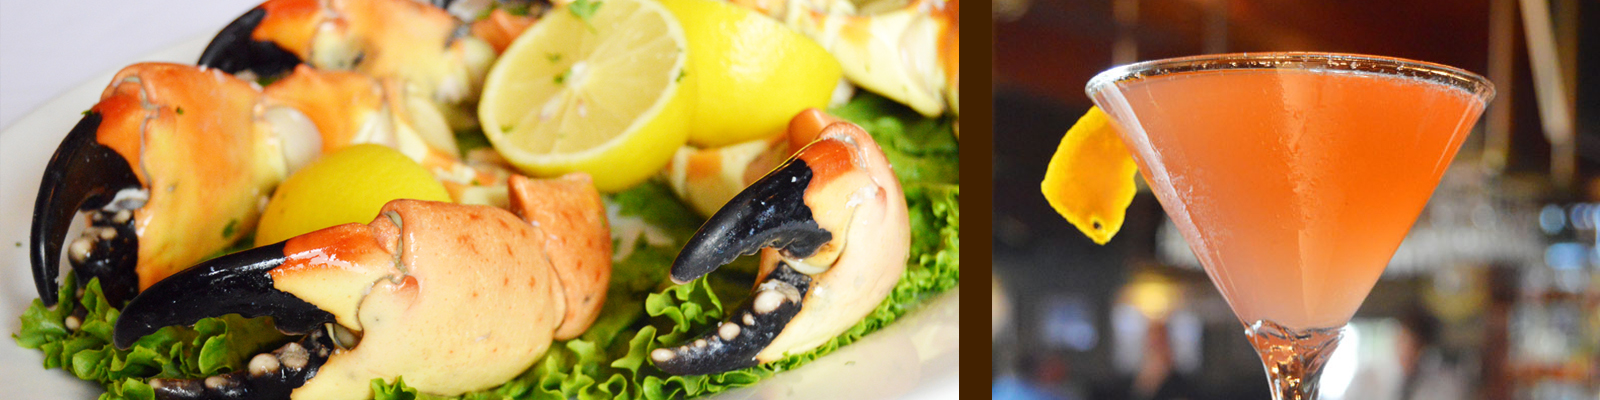 stone crab claws and martini